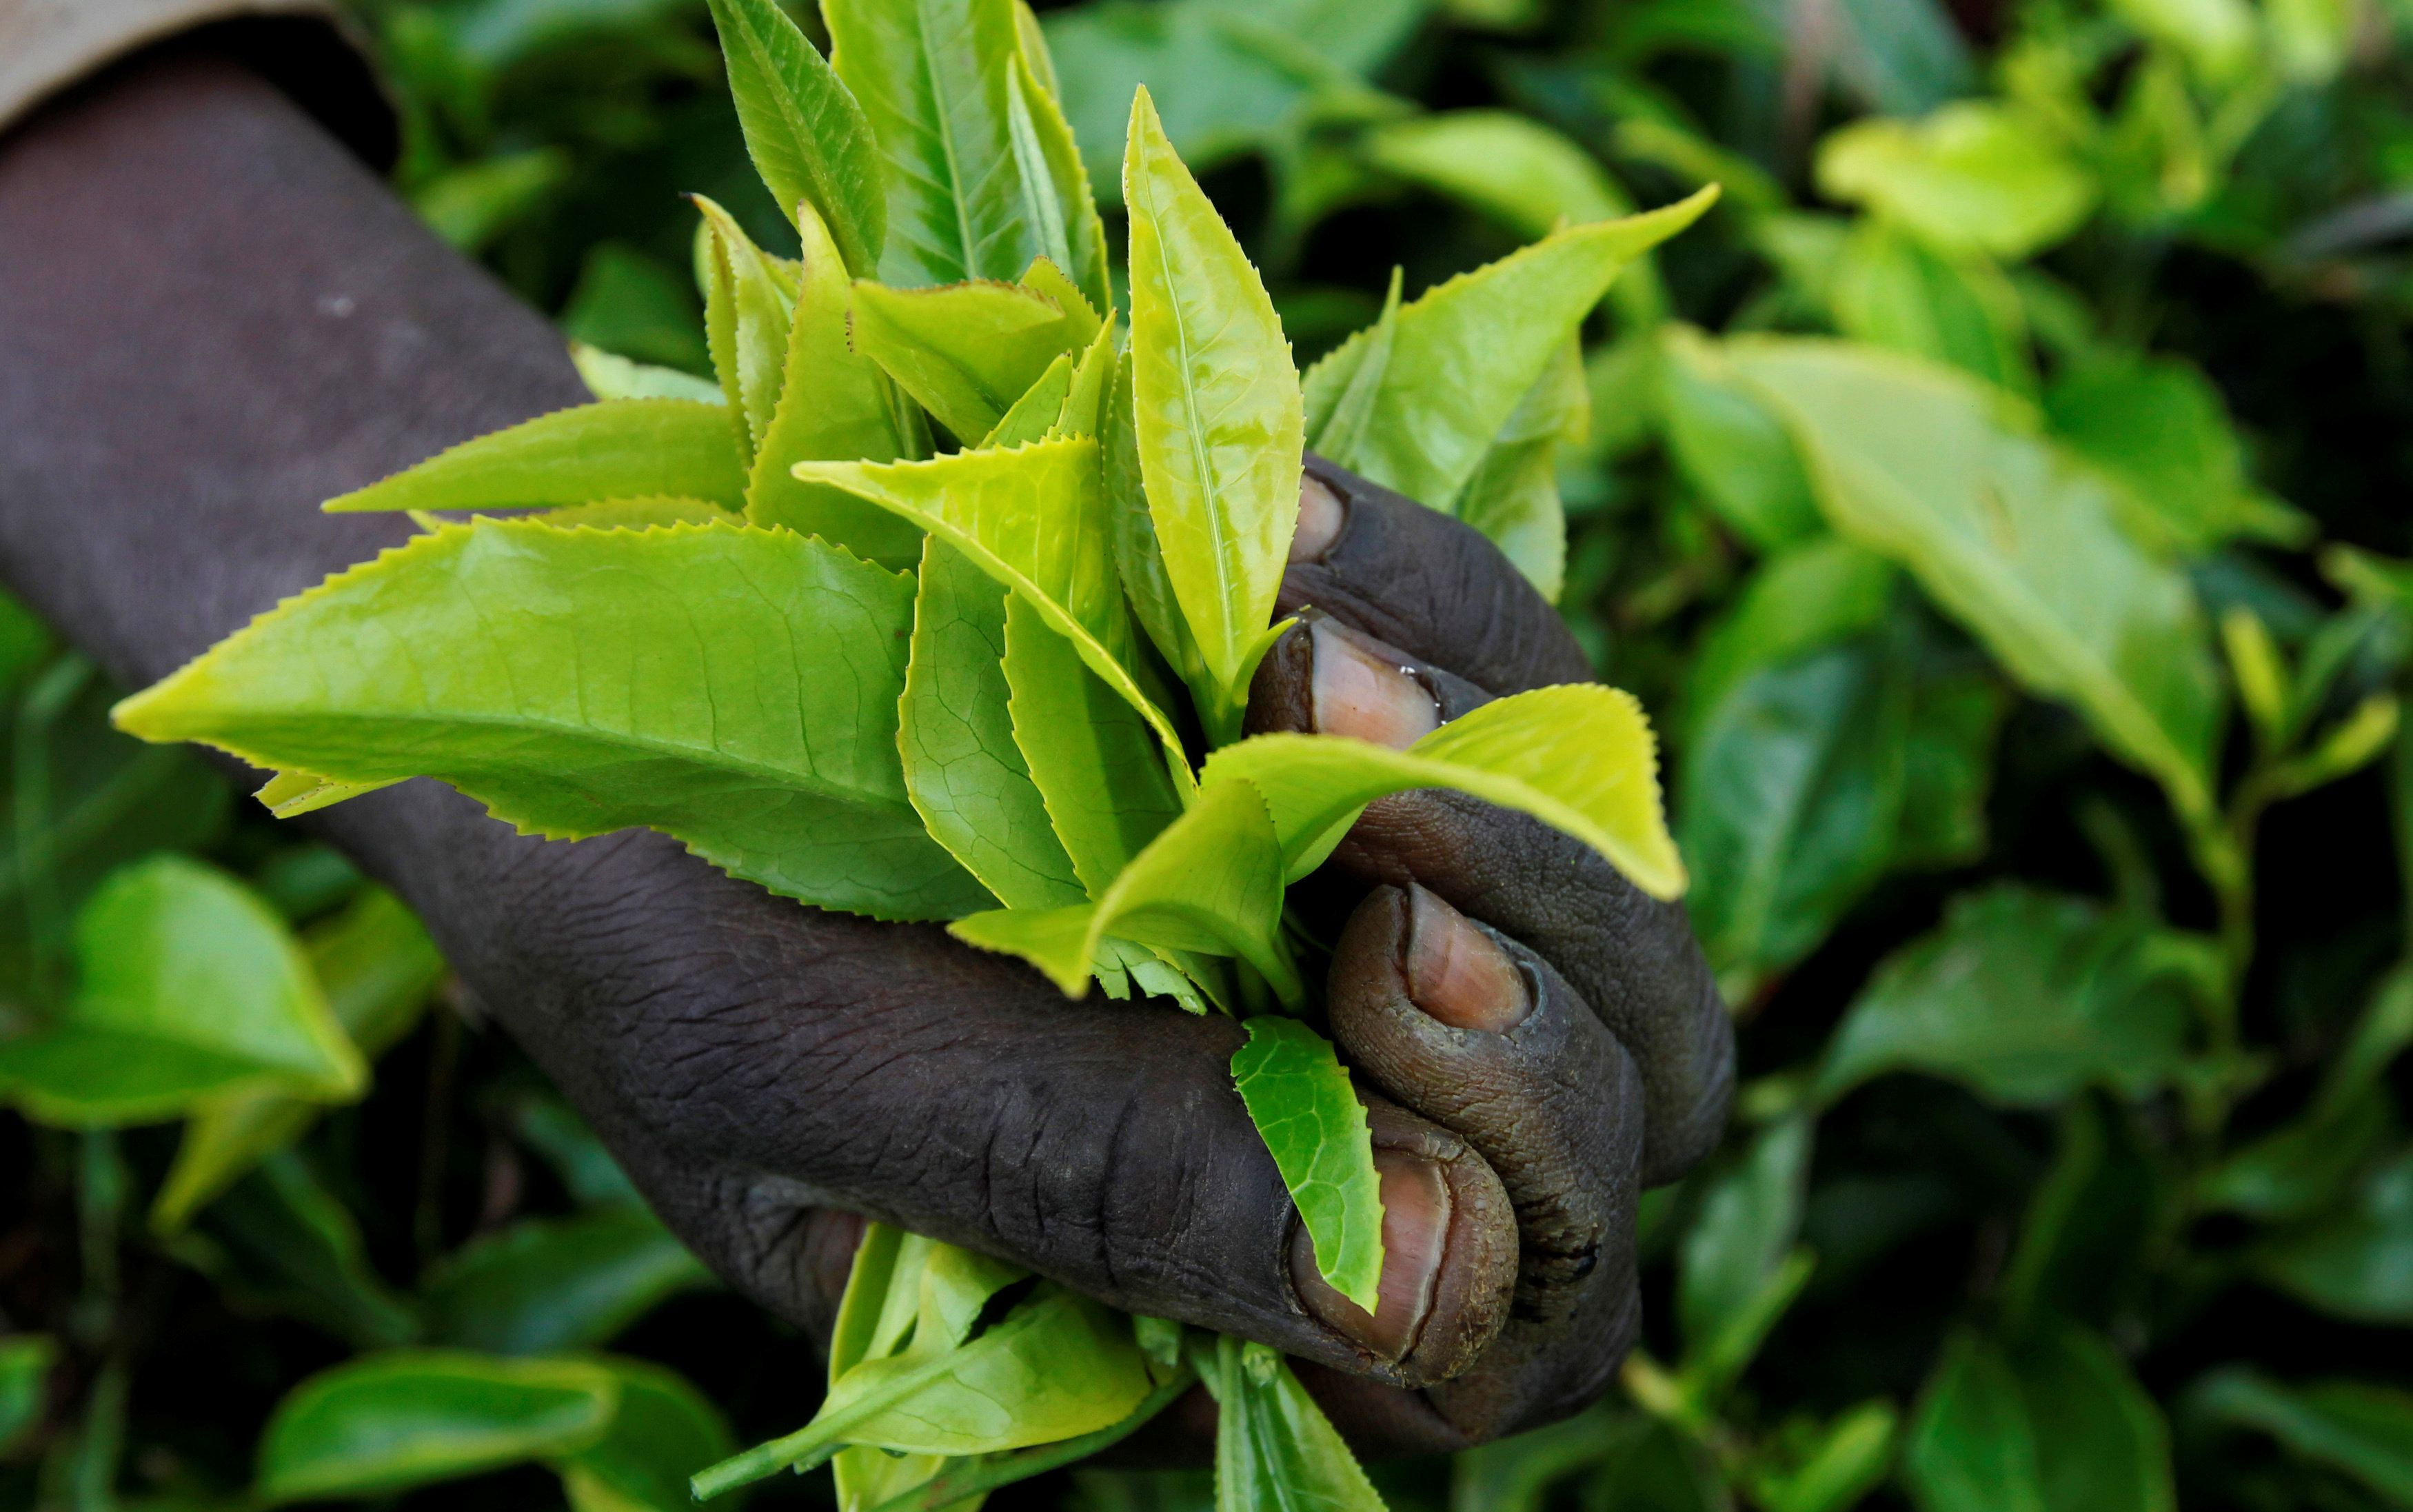 Hard Numbers: Kenya's tea industry takes a spill, twin bombs in the Philippines, Taliban's negotiating team, Lukashenko targets the press